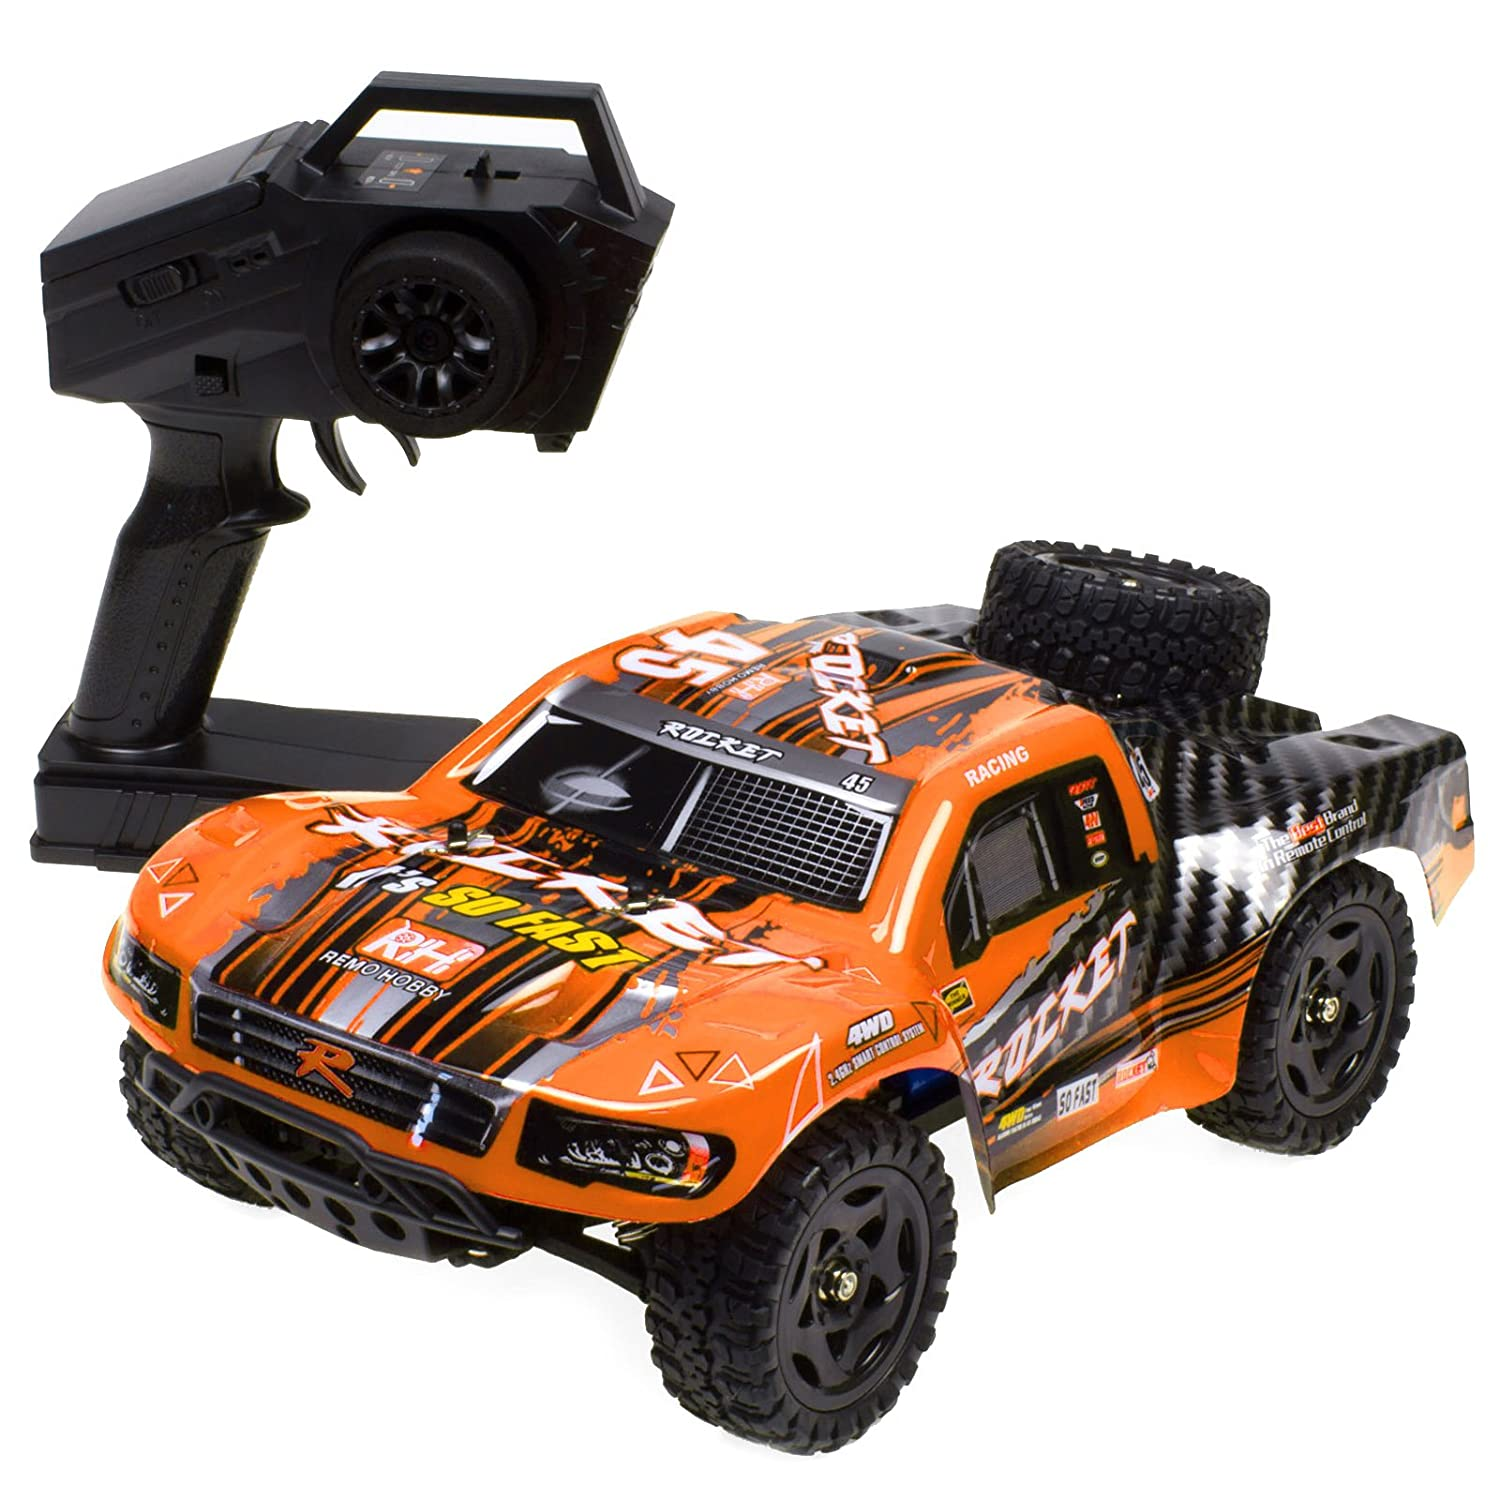 Cheerwing Remo Rocket Rc Truck 116 24ghz 4wd Remote Hoppy Tail Light Converter Wiring Diagram Control Car High Speed Off Road Short Course Orange Toys Games